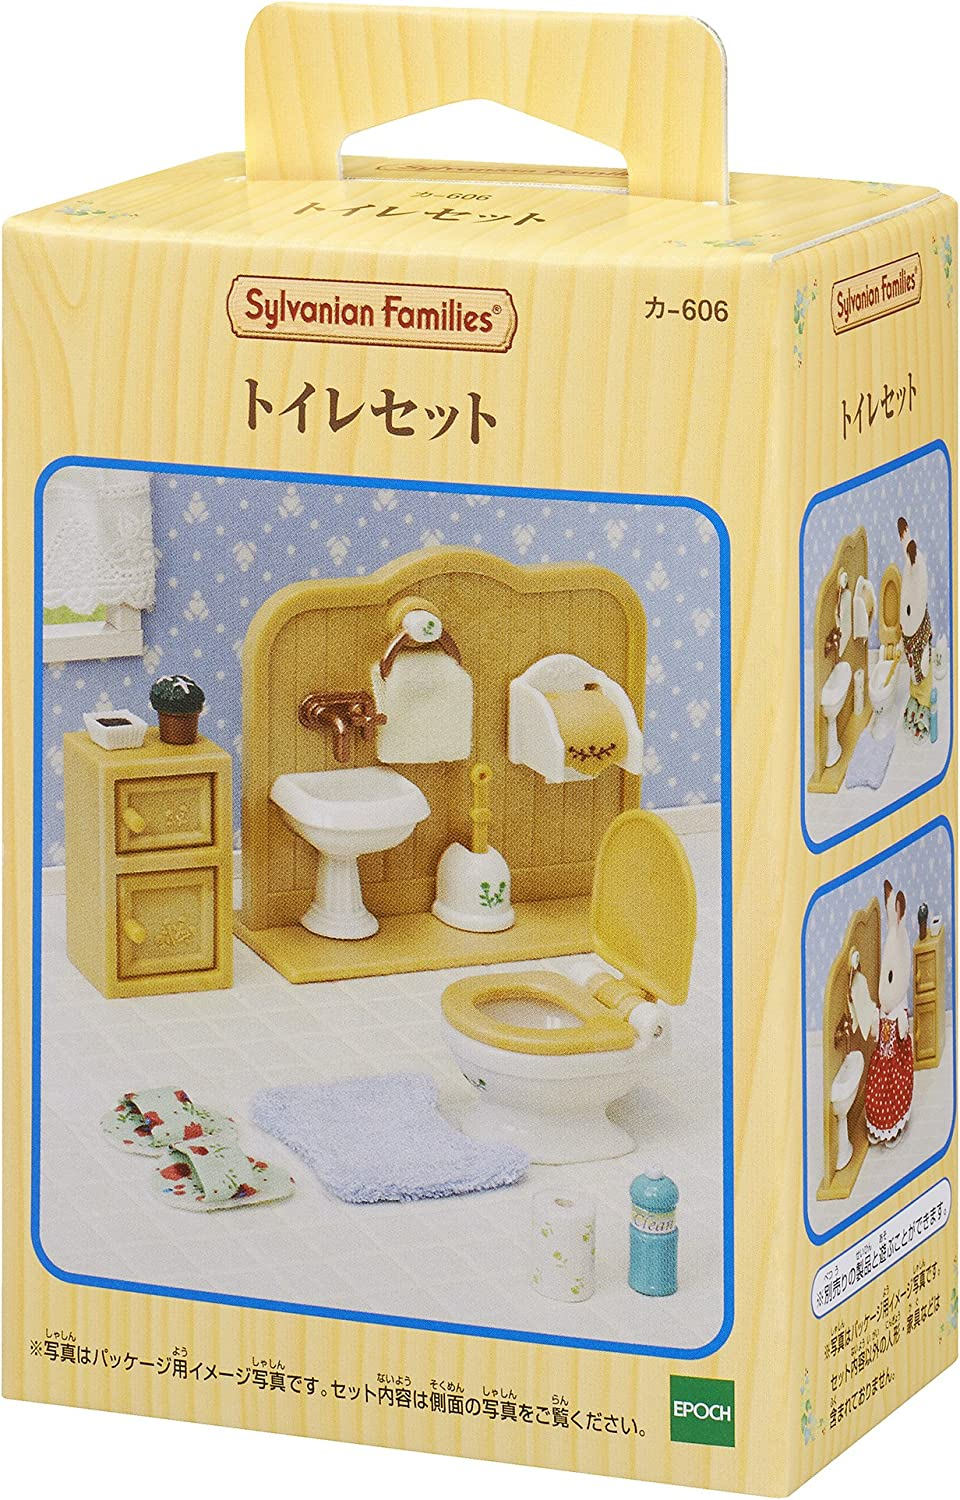 Epoch Calico Critters Families Sylvanian furniture toilet set Ka-606 JAPAN